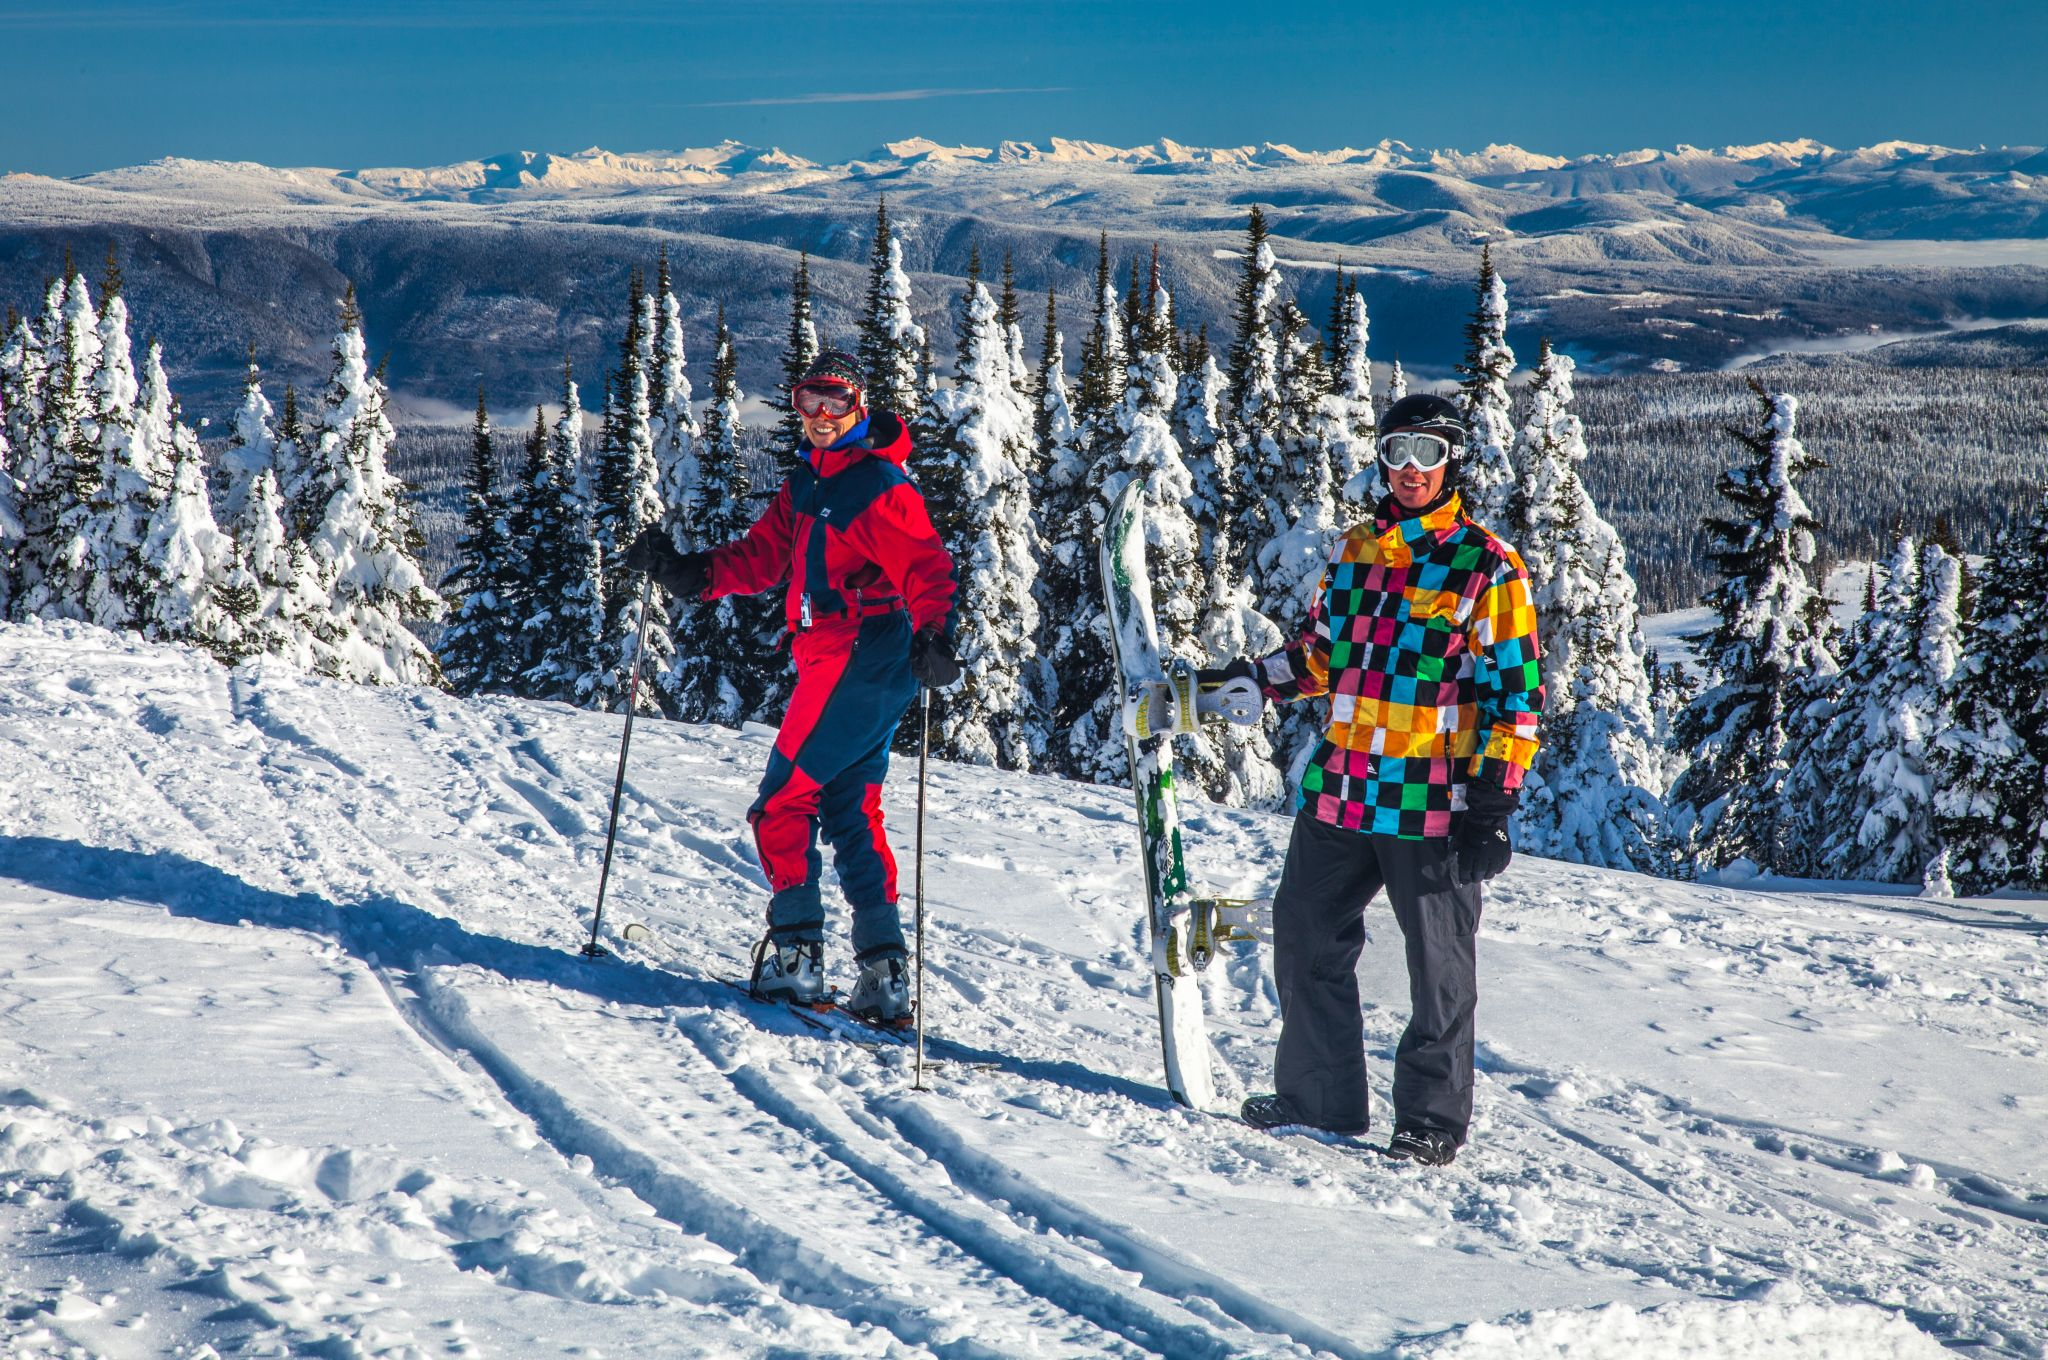 Family Fun Christmas Holiday Ideas A Perfect Ski Vacation